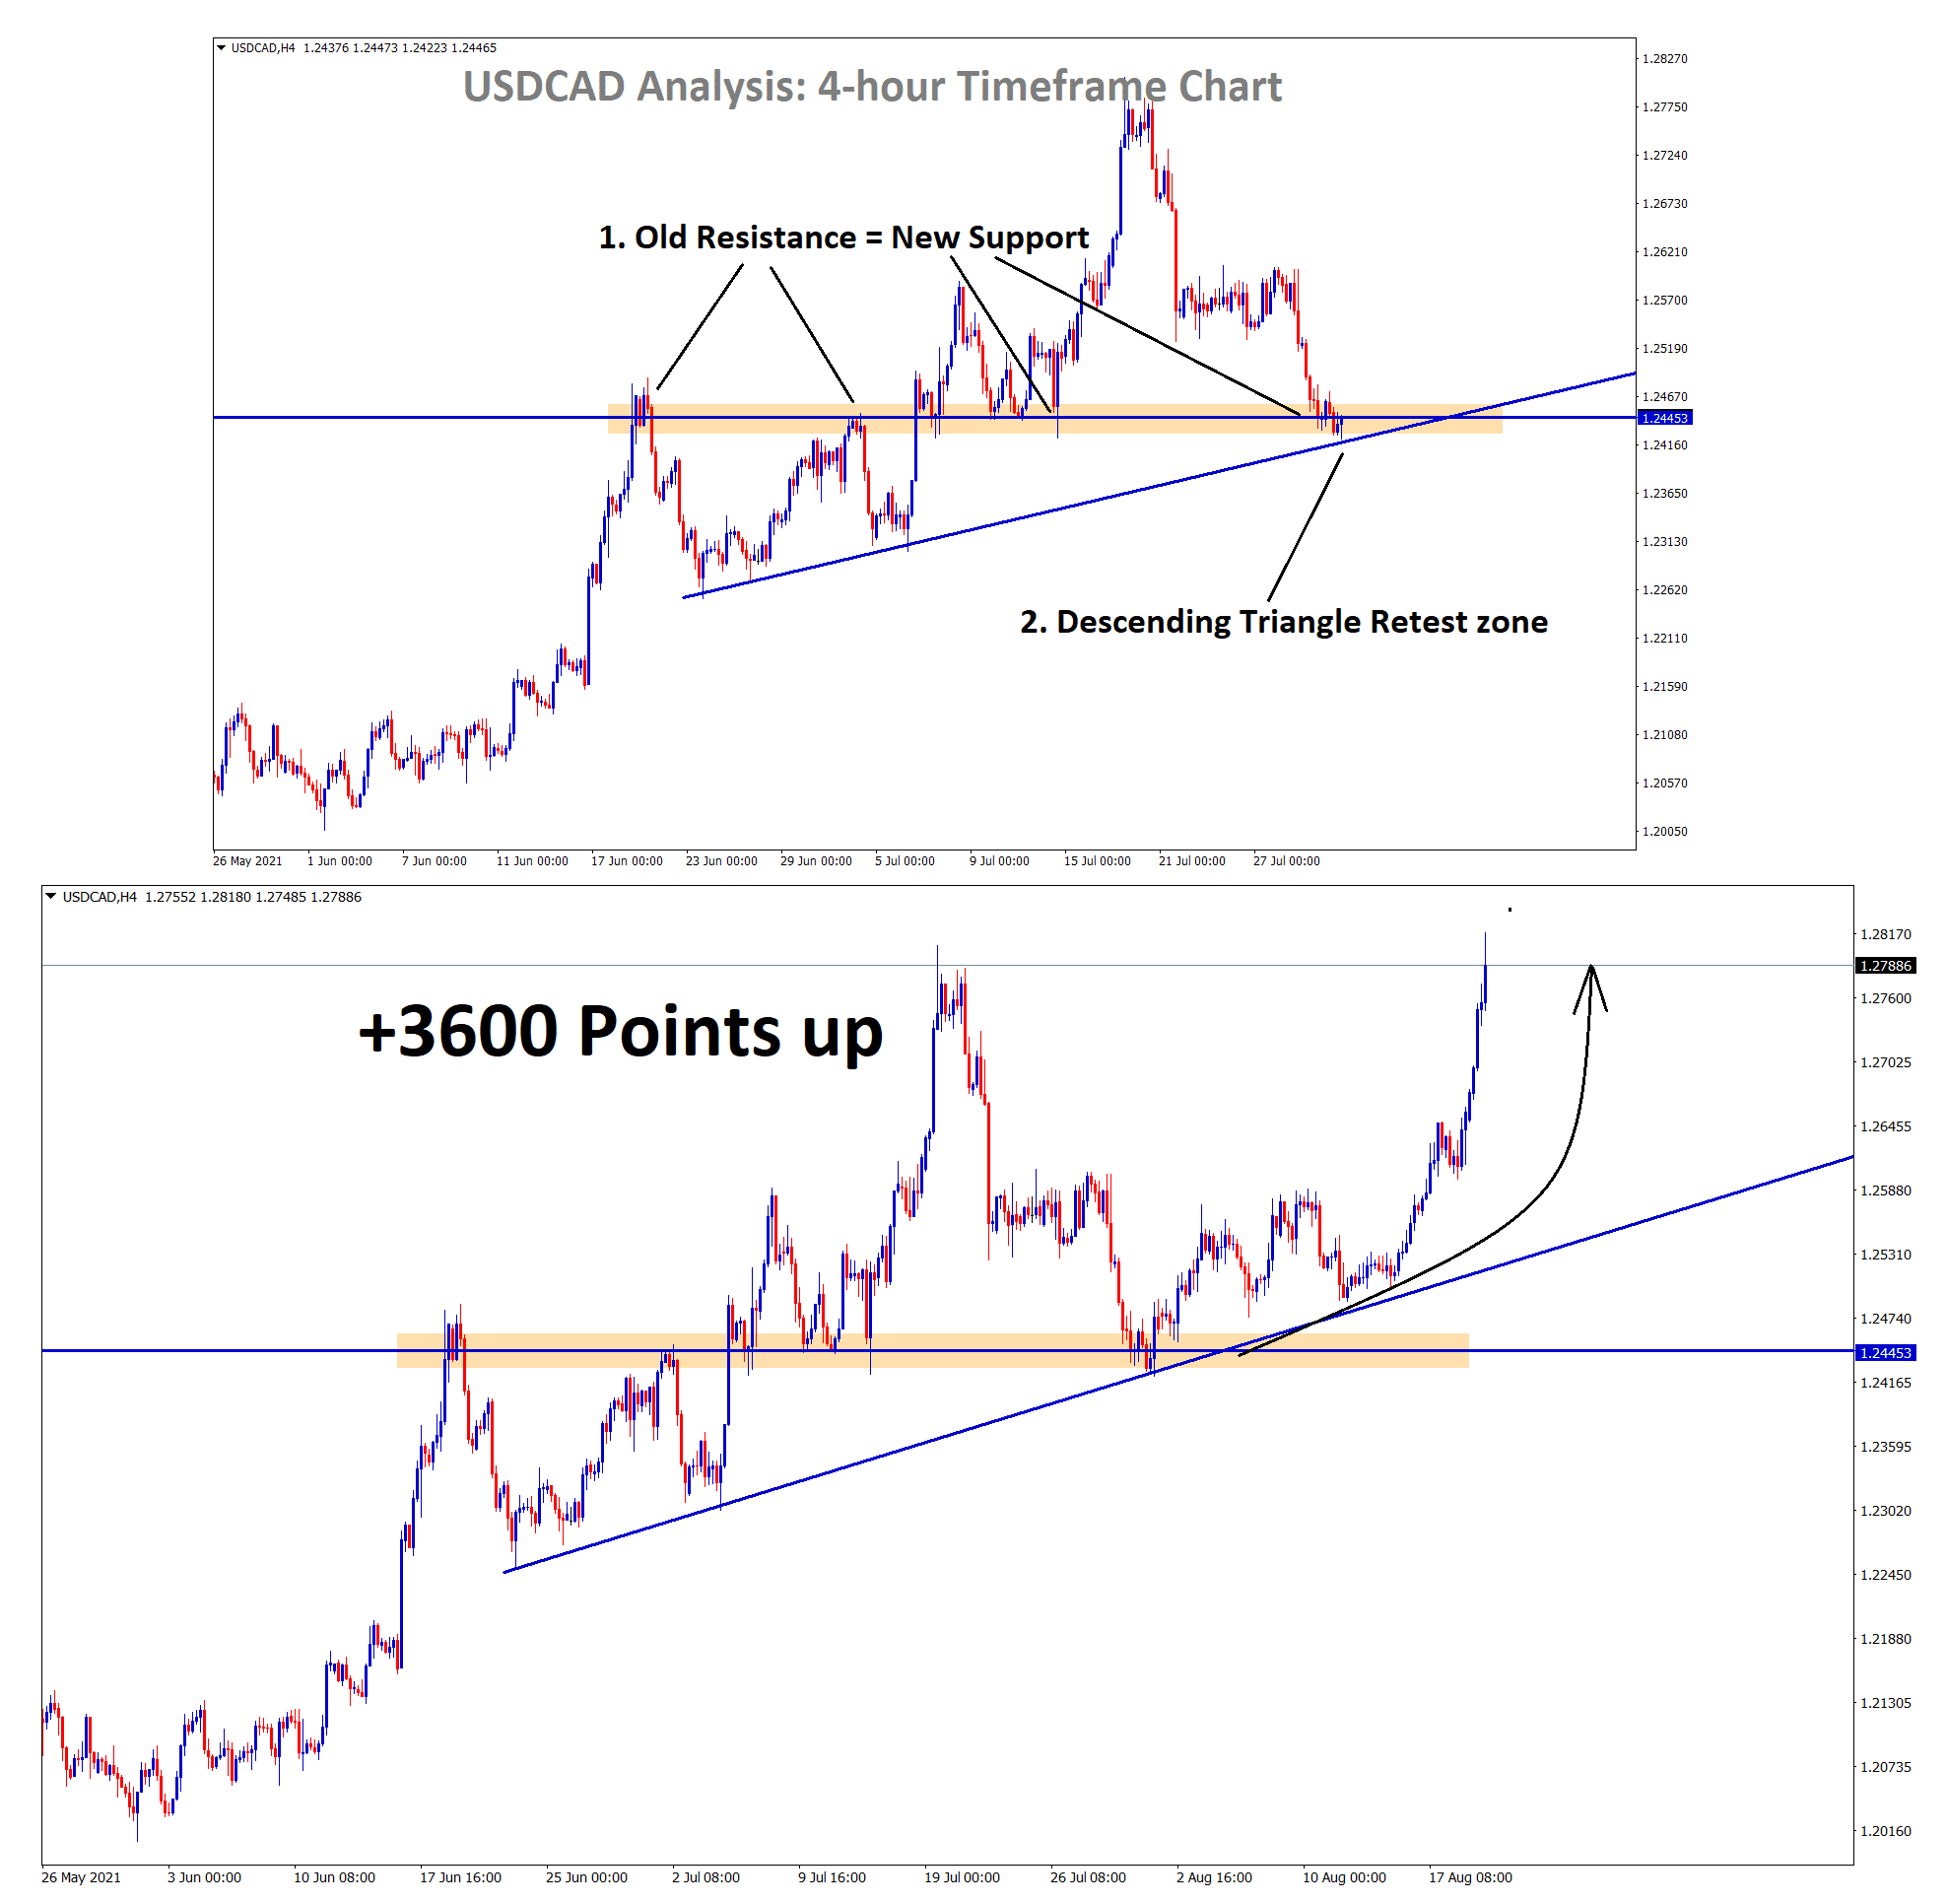 USDCAD rebound 360 pips from the support zone and the Descending Triangle retest zone